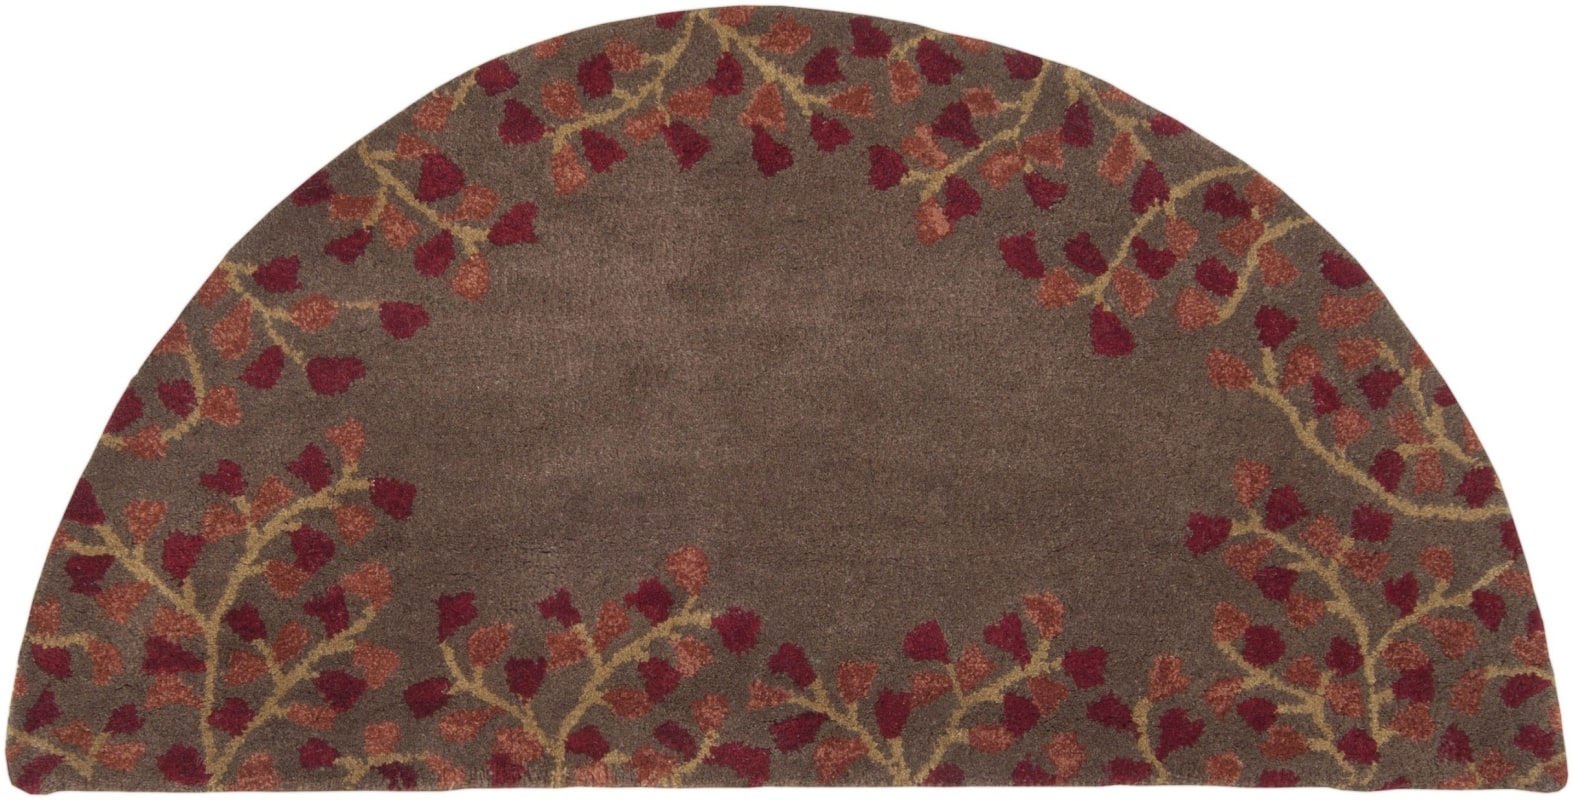 Surya ATH-5003 Athena Hand Tufted Wool Rug Red 9 x 12 Home Decor Rugs Sale $1222.80 ITEM: bci2658140 ID#:ATH5003-912 UPC: 764262276077 :